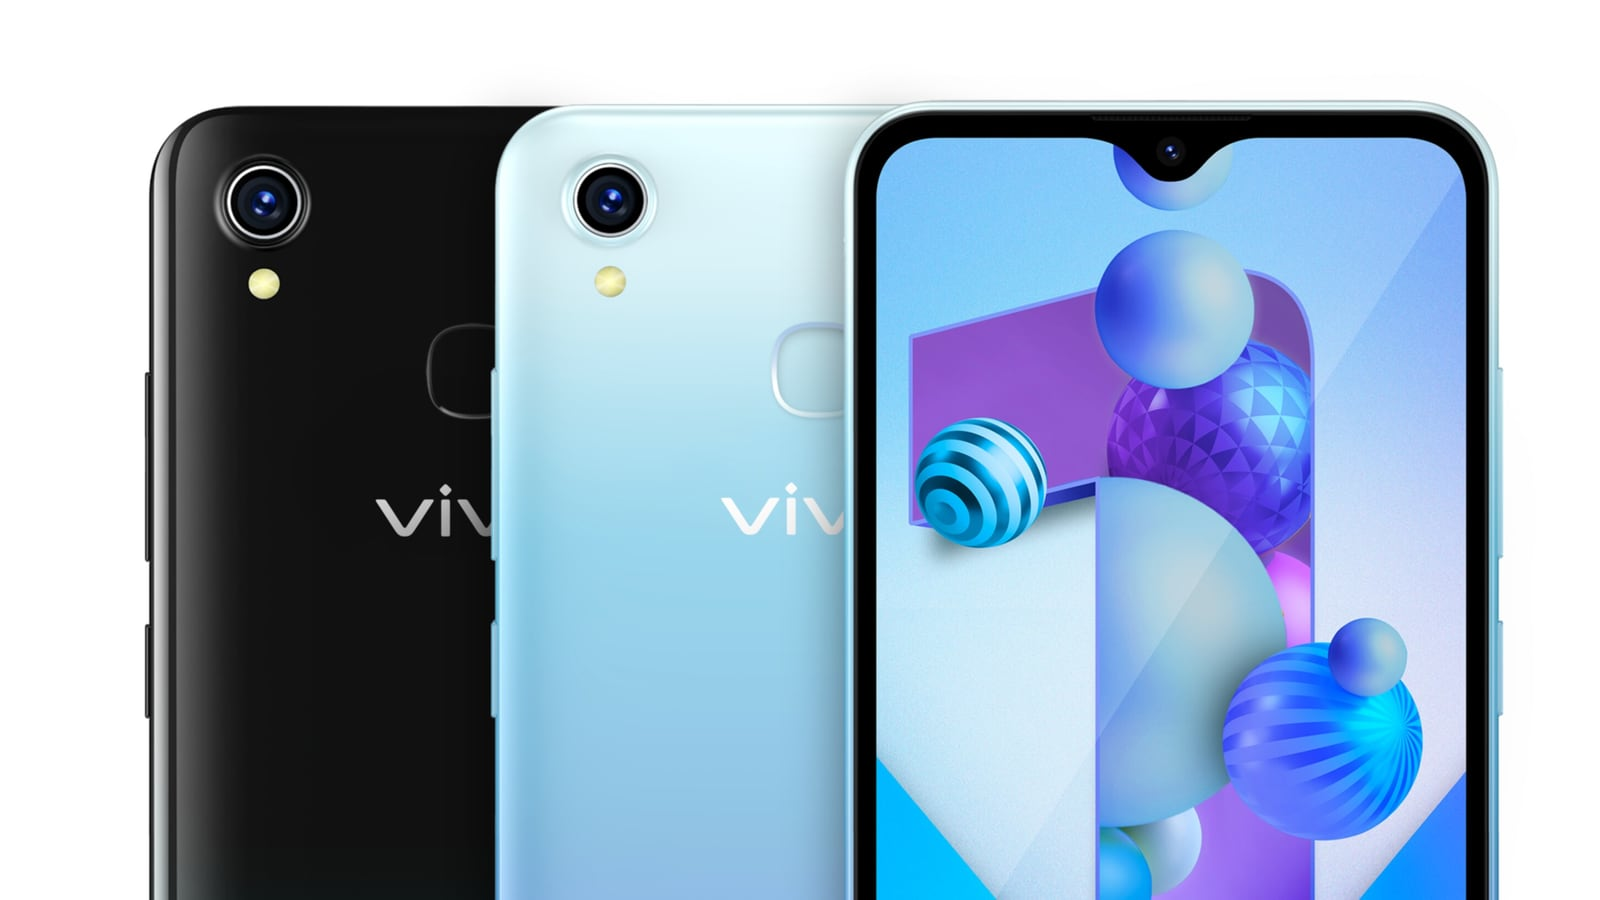 The Vivo Y1 was launched with 3 GB of RAM in India: here's how much it costs